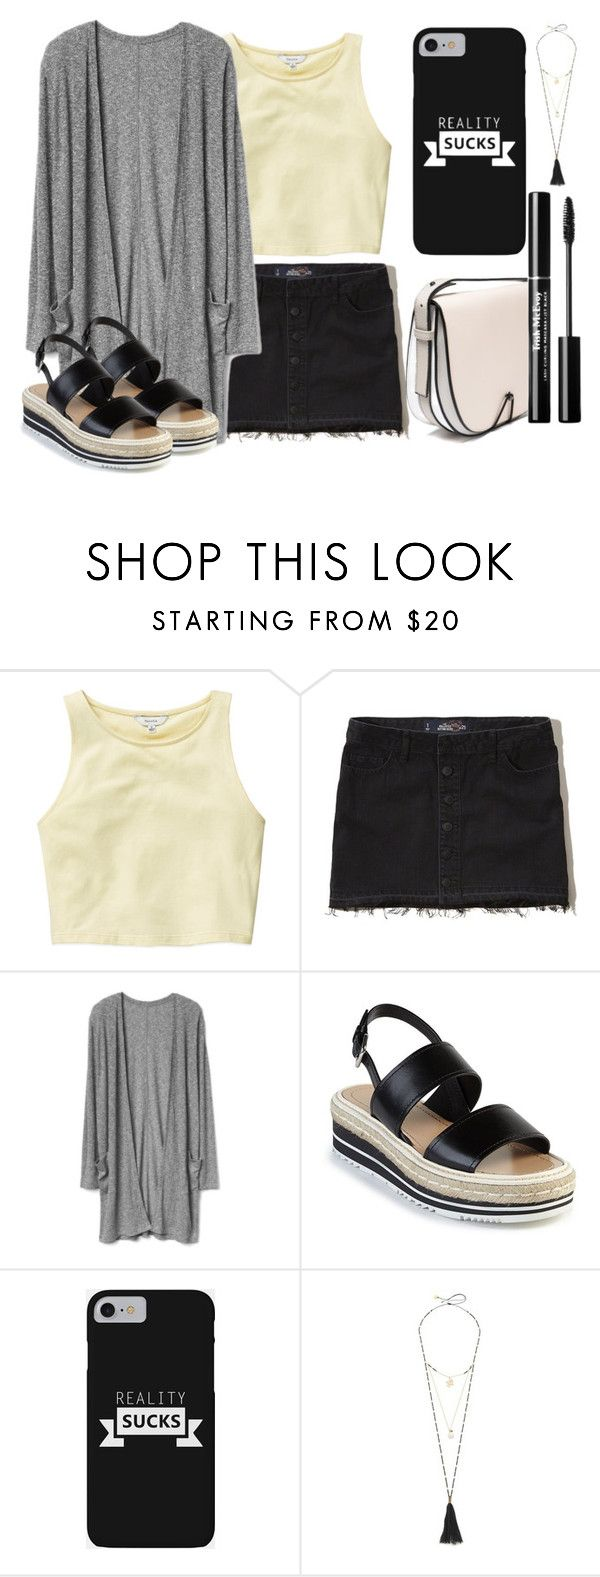 """Sin título #941"" by lululafitte on Polyvore featuring moda, Talula, Hollister Co., Prada y Mishky"